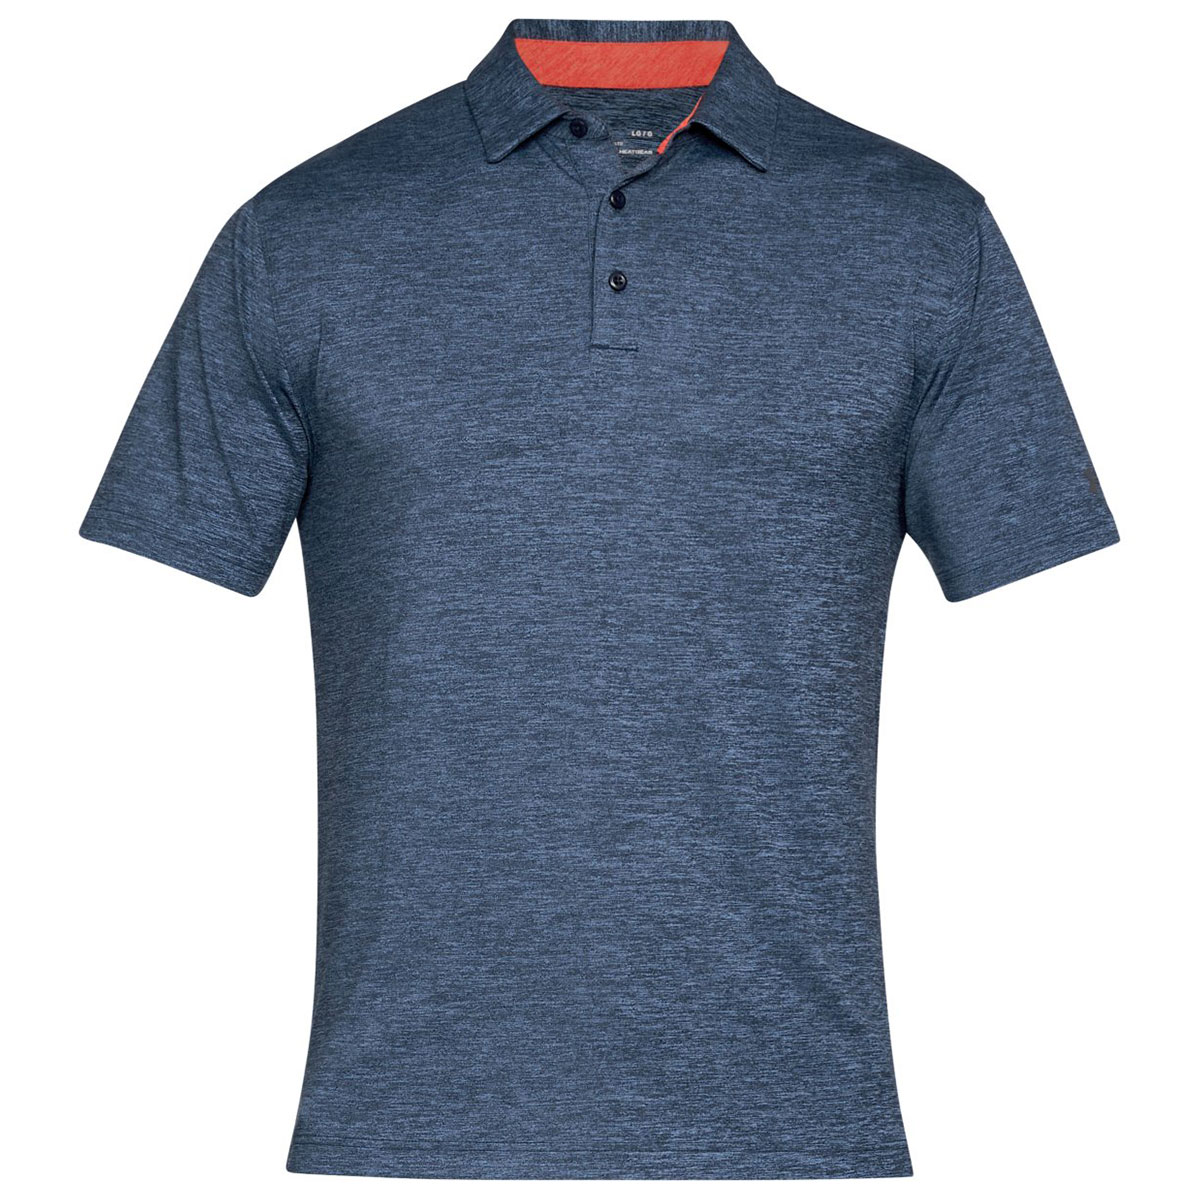 Under-Armour-Mens-Crestable-Playoff-Performance-Golf-Polo-Shirt-50-OFF-RRP thumbnail 4